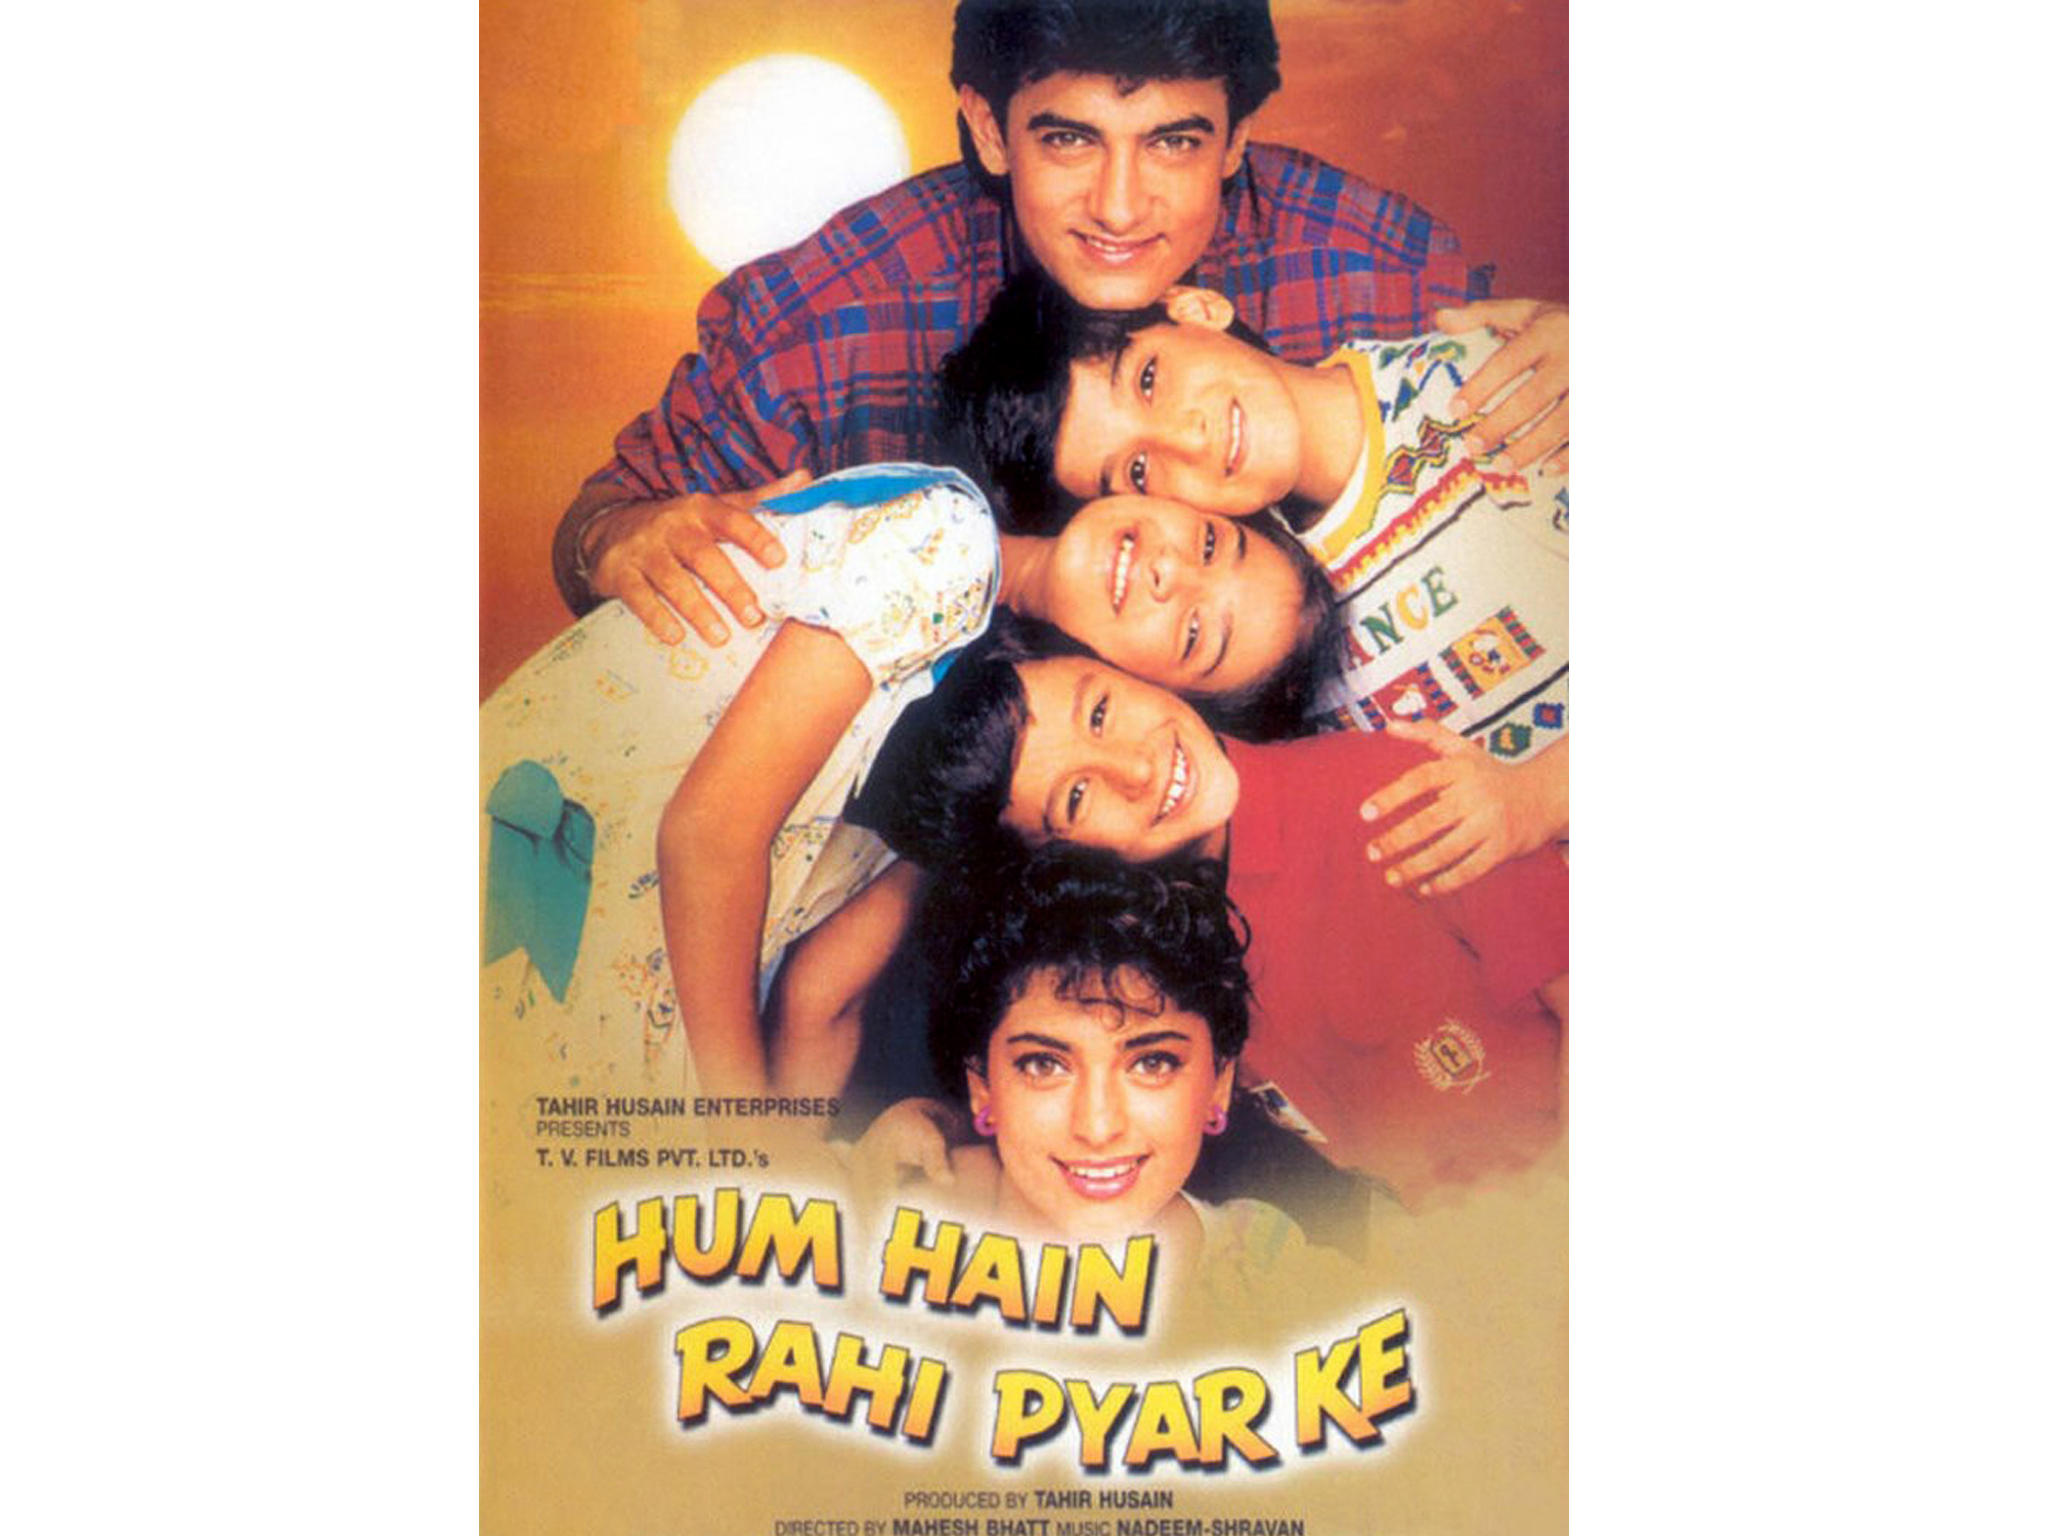 Hum Hain Rahi Pyar Ke Movie